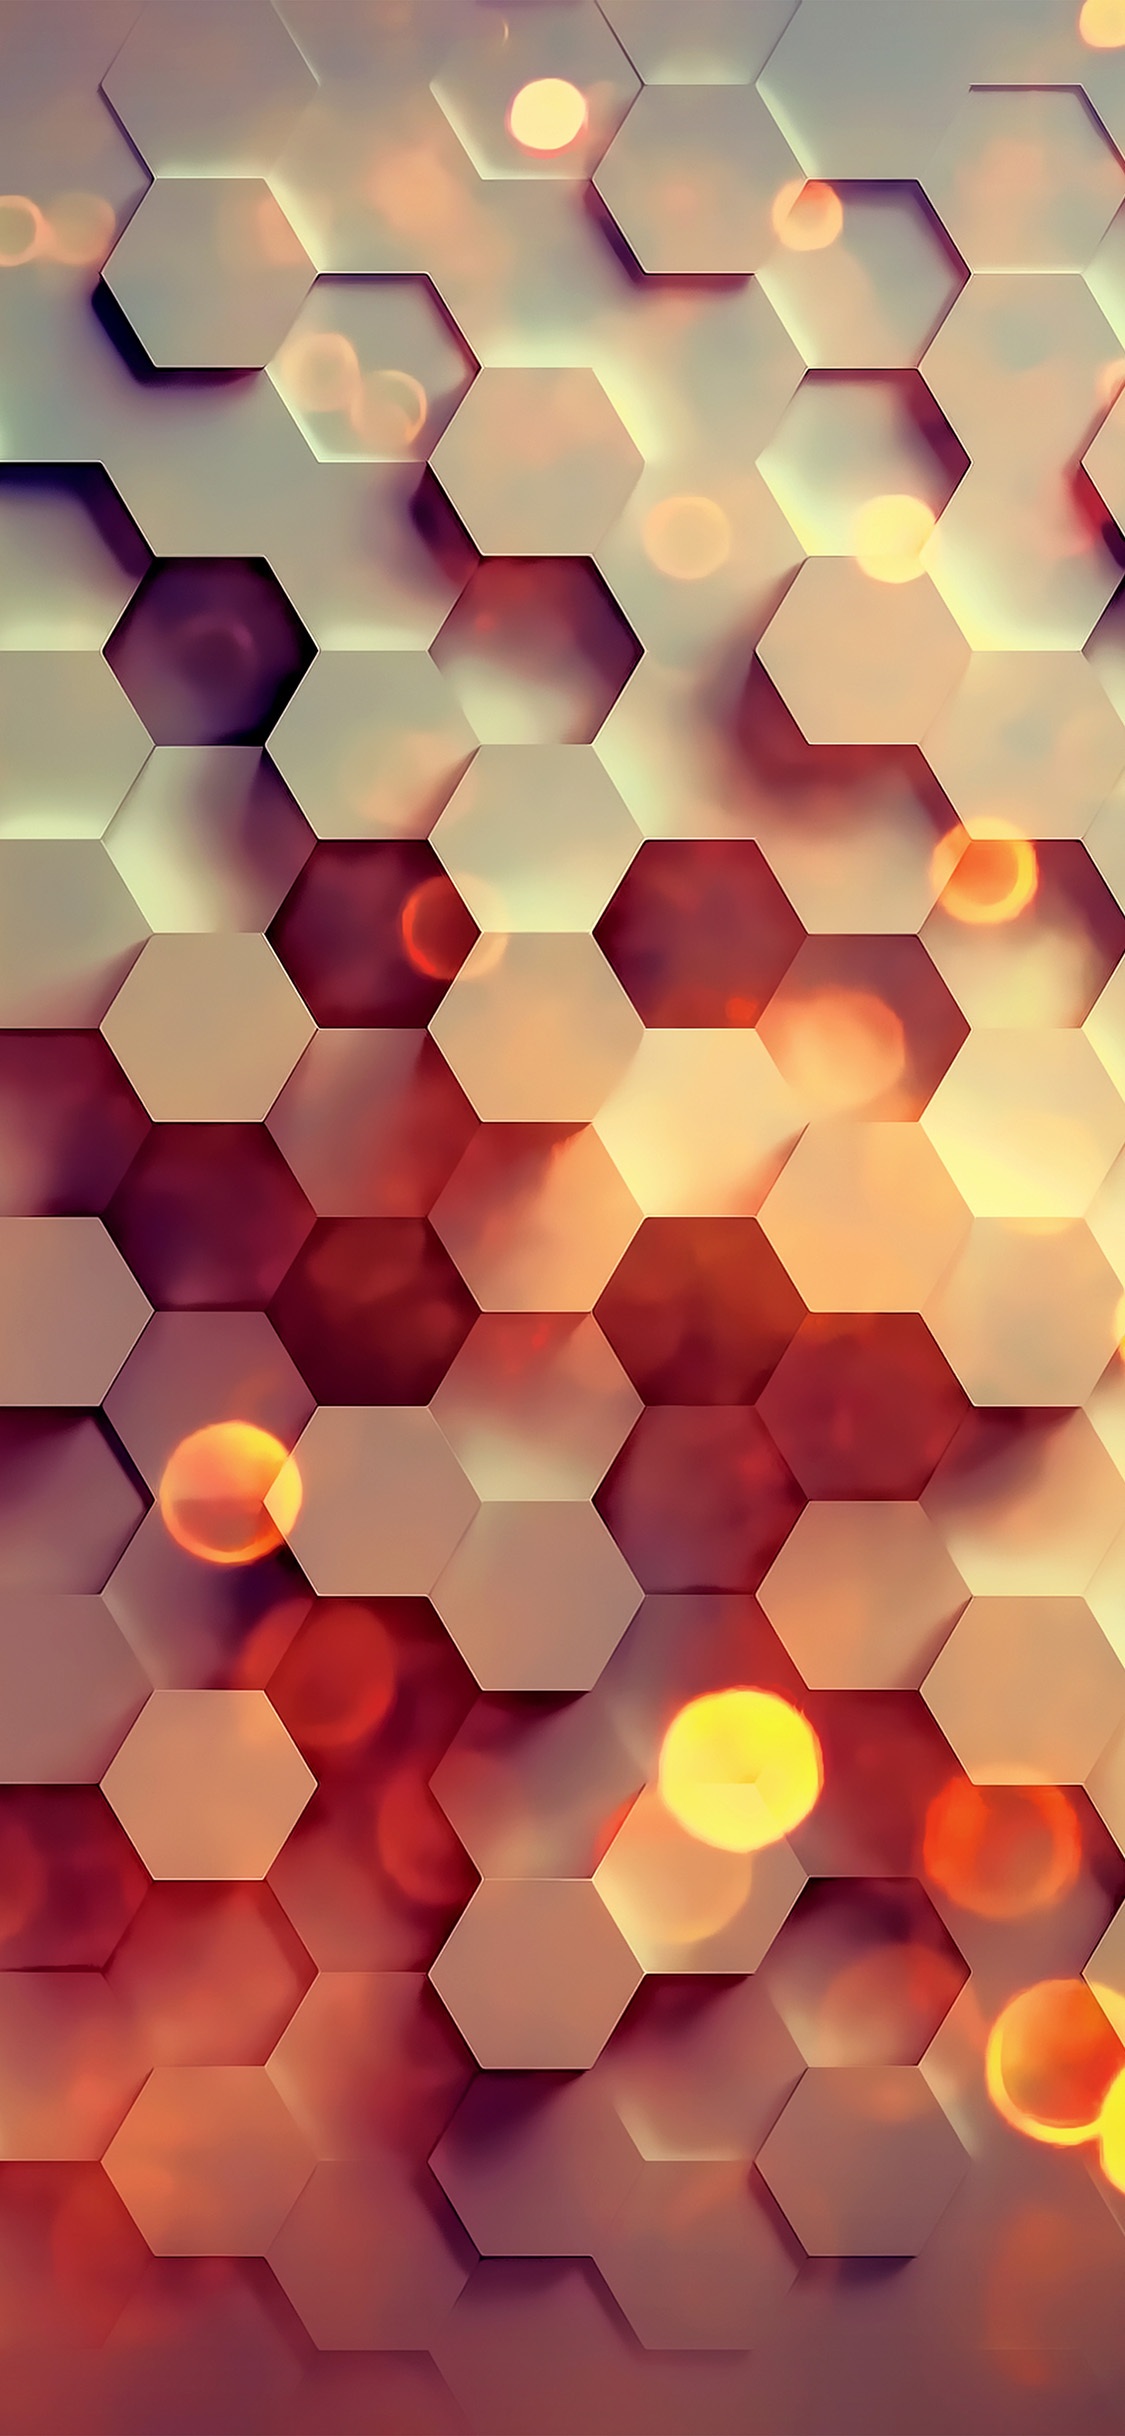 iPhonexpapers.com-Apple-iPhone-wallpaper-vy40-honey-hexagon-digital-abstract-pattern-background